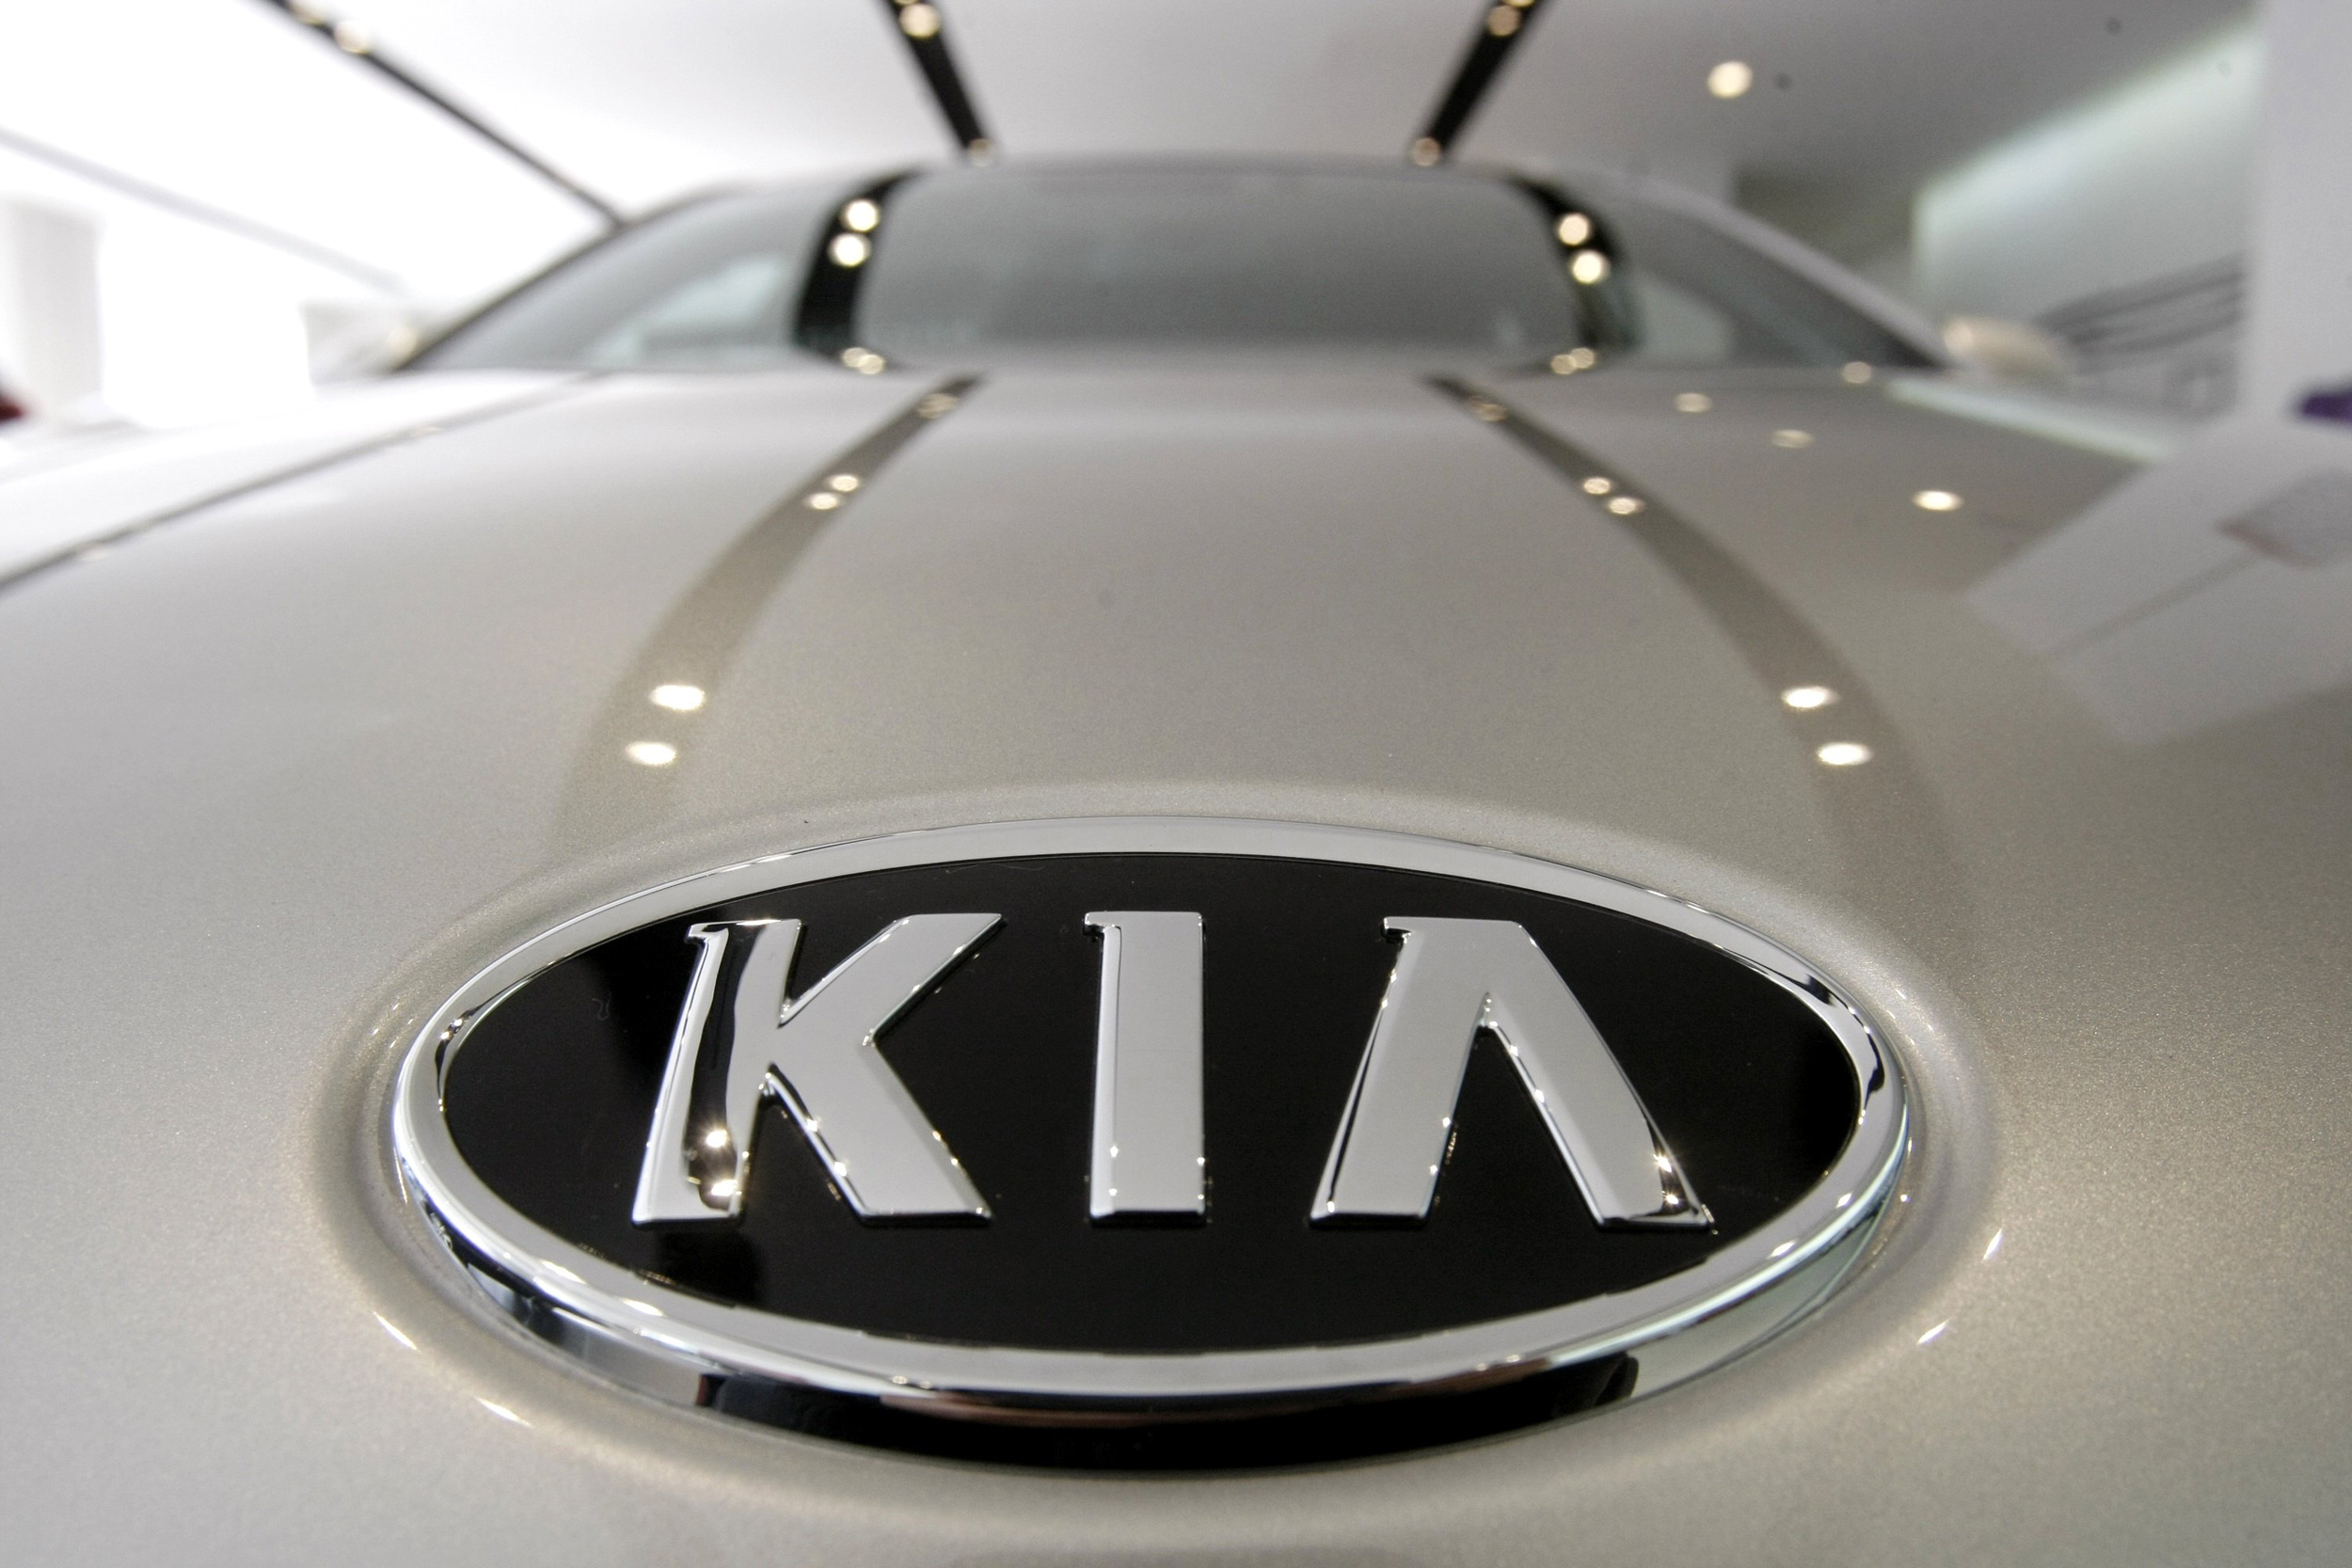 Kia-recalls-over-500,000-vehicles-over-airbags-amid-probe-into-four-deaths